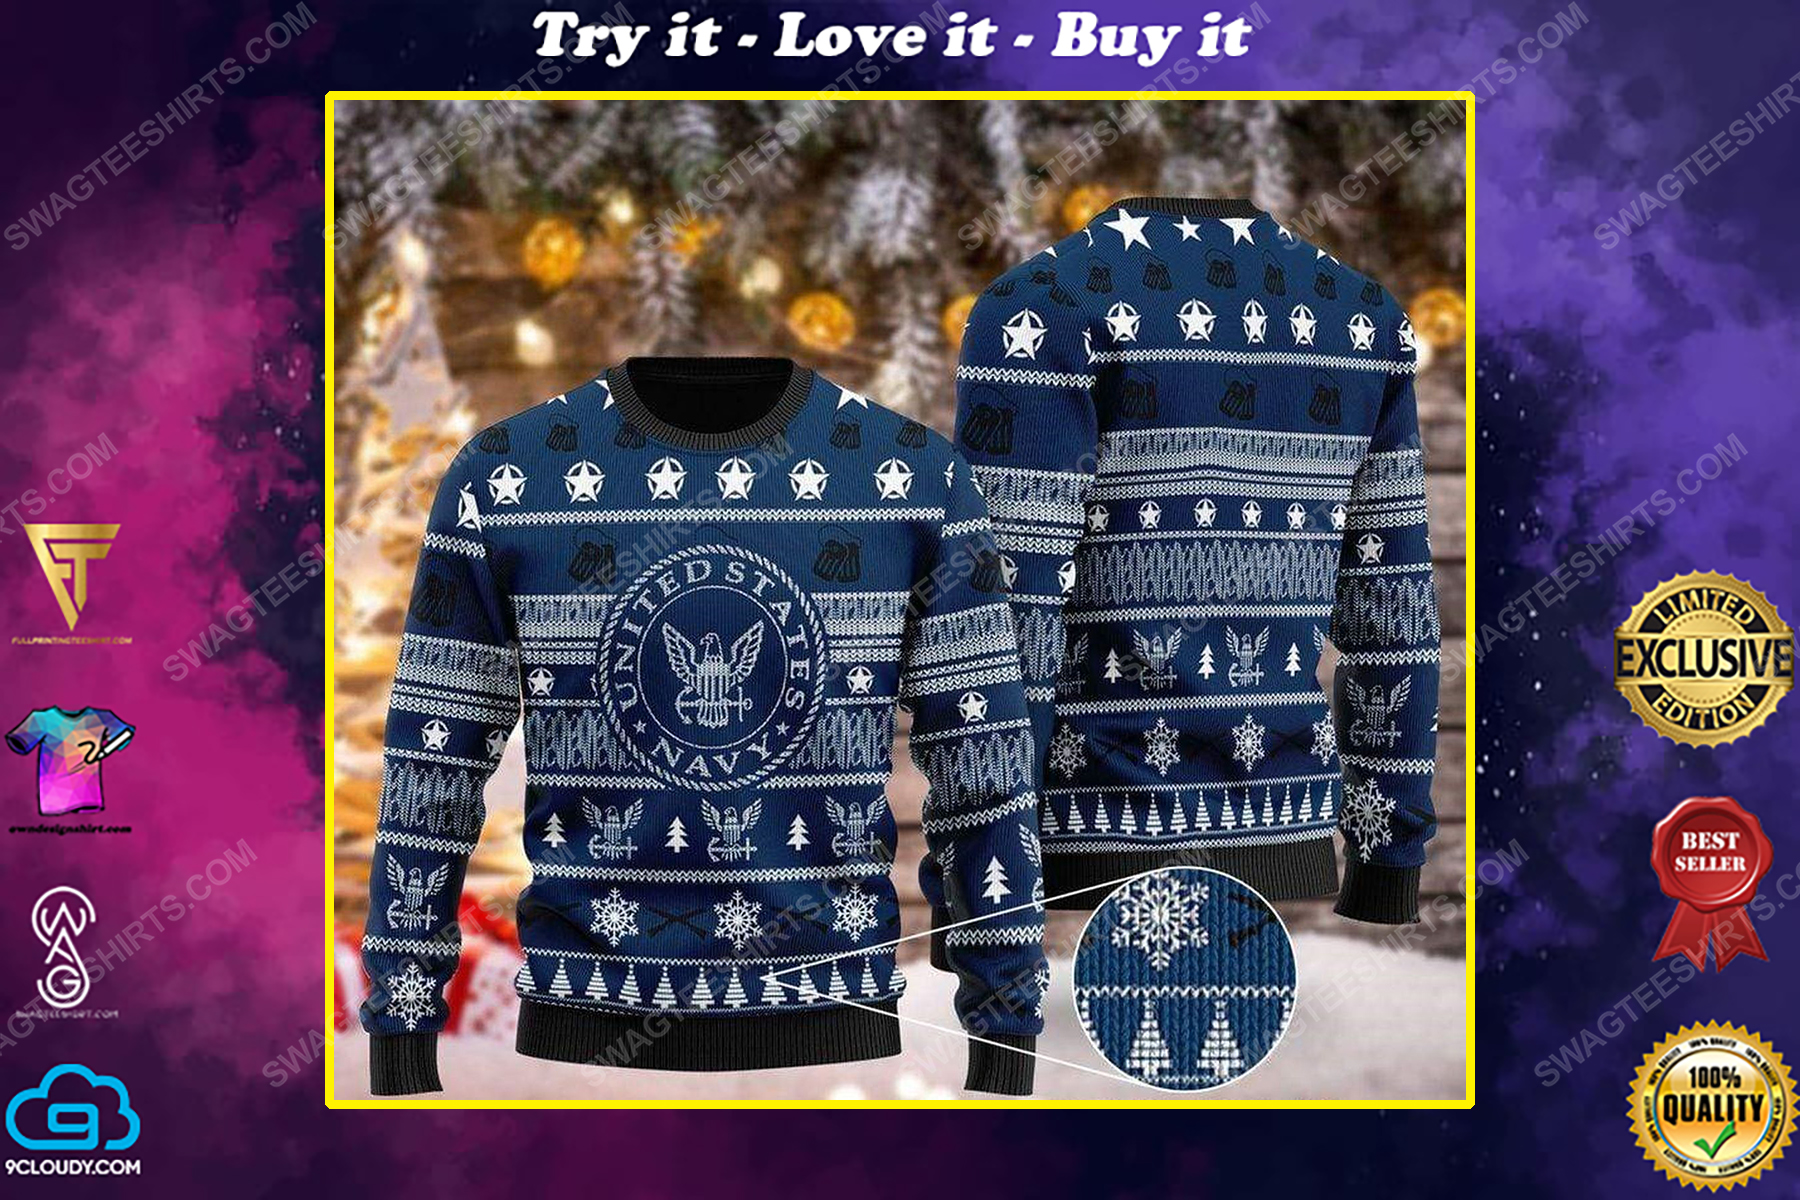 United states navy pattern ugly christmas sweater